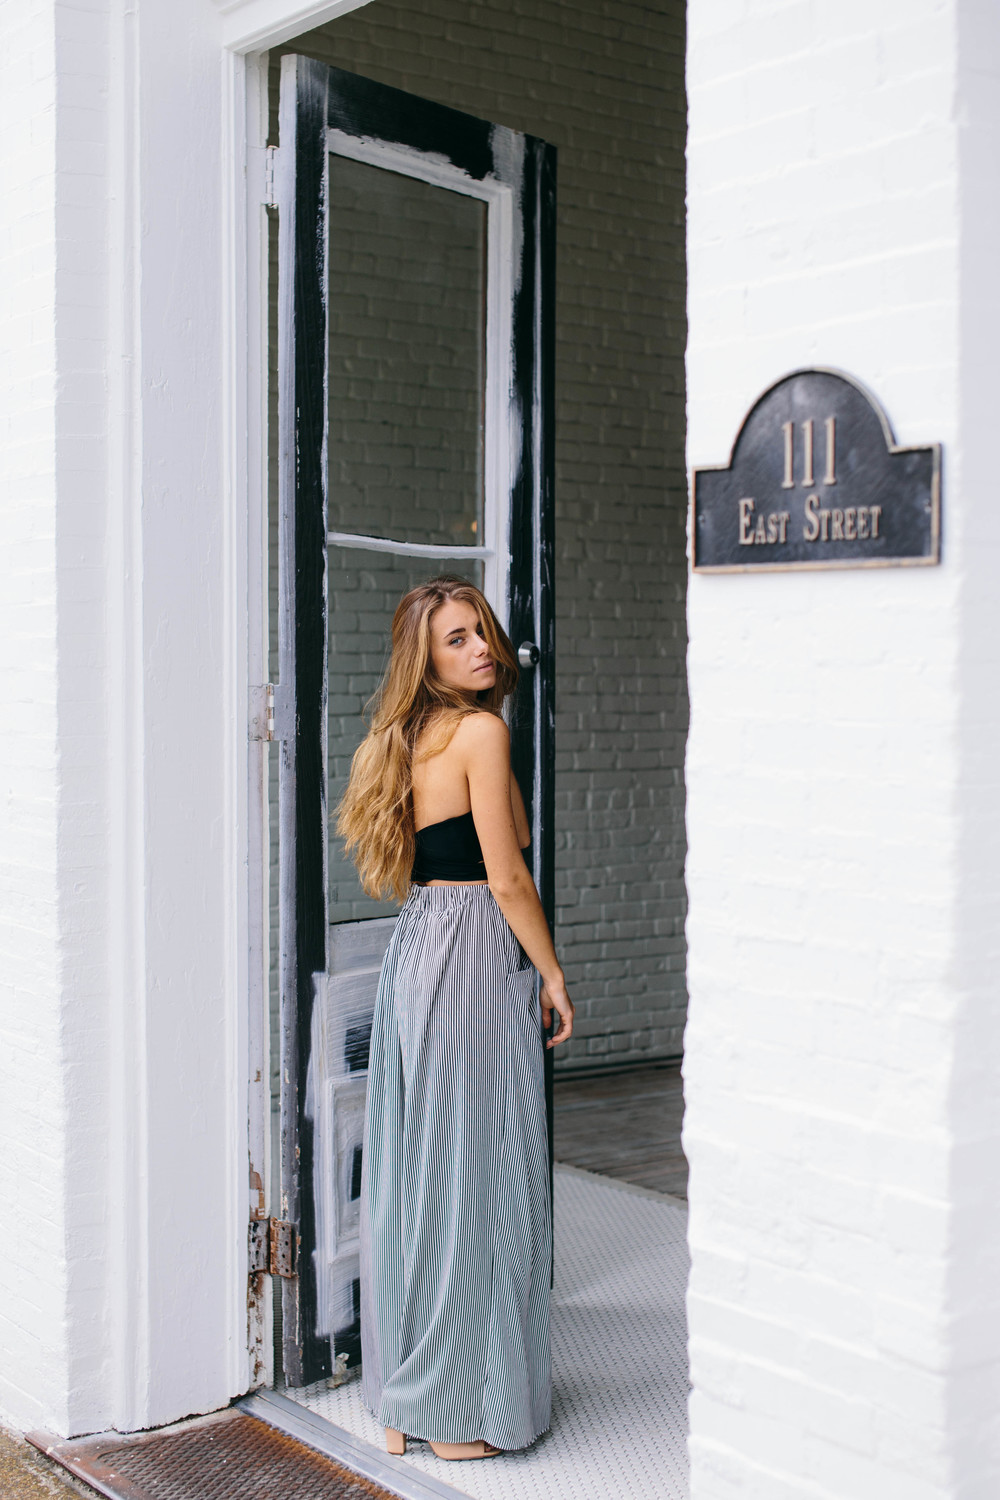 Location: One Eleven East, Wedding + Event space in Hutto, Tx Designer + Stylist: Chelsea Nordyke, Spire the Label Jewelry: Jen Moulton, Moulton Jewelry Model: Rekadrienn, Fashion Blogger